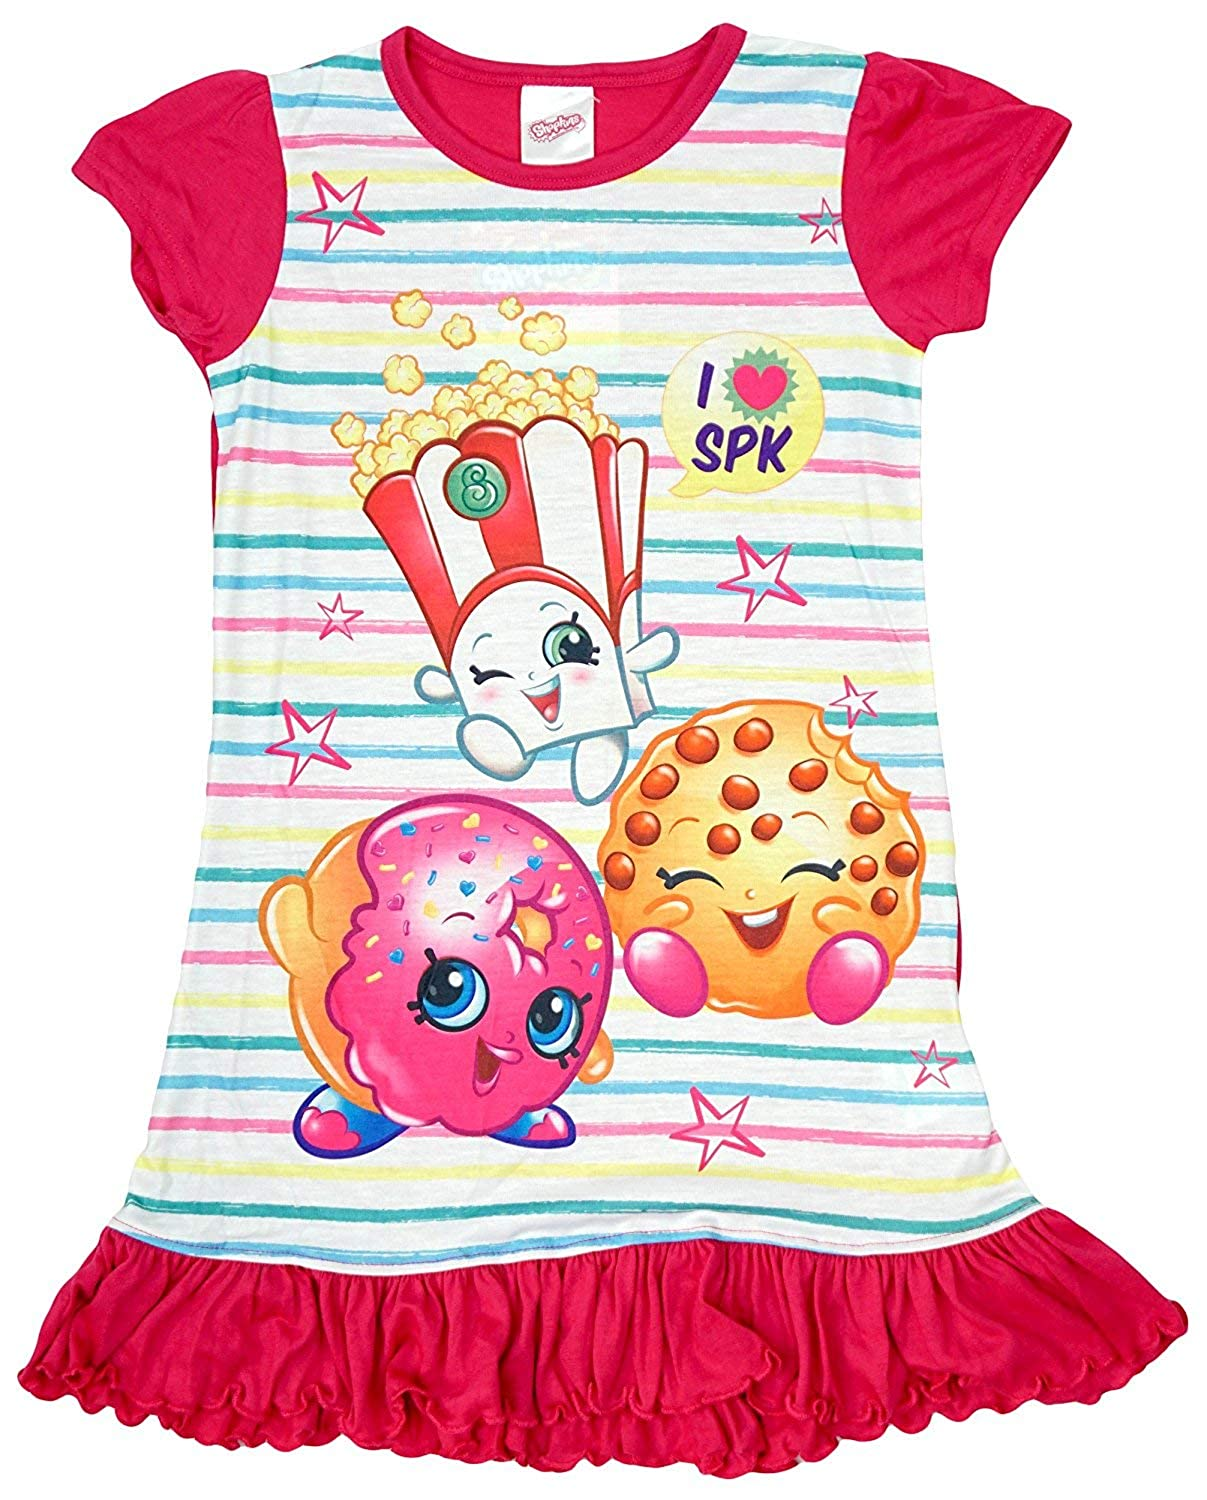 Shopkins Girls Cookie DLish Polly Stripe Frill Nightdress Nightie Sizes from 2 to 8 Years